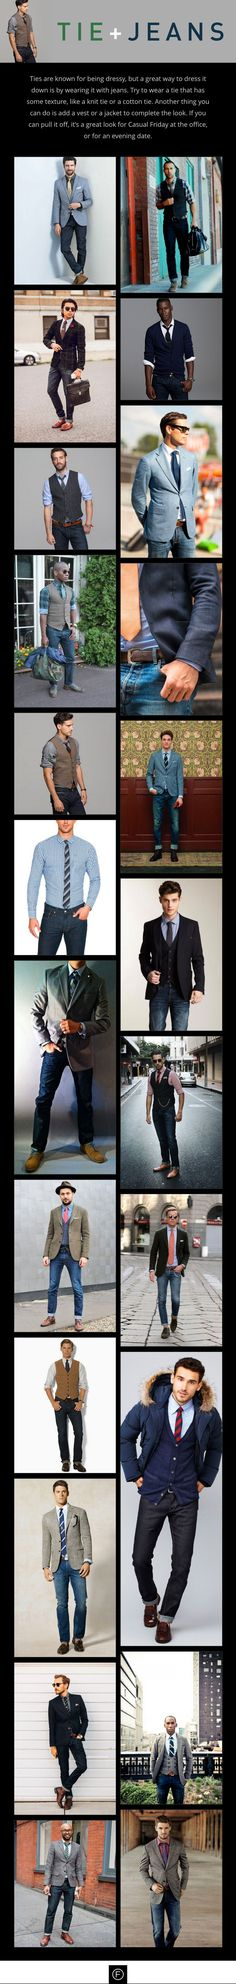 Ties are known for being dressy, but a great way to dress it down is by wearing it with jeans. Try to wear a tie that has some texture, like a knit tie or a cotton tie. Another thing you can do is add a vest or a jacket to complete the look. Very casual Fashion Moda, Fashion Bags, Mens Fashion, Sharp Dressed Man, Well Dressed Men, Outlet Michael Kors, Mode Man, Look 2015, Herren Style